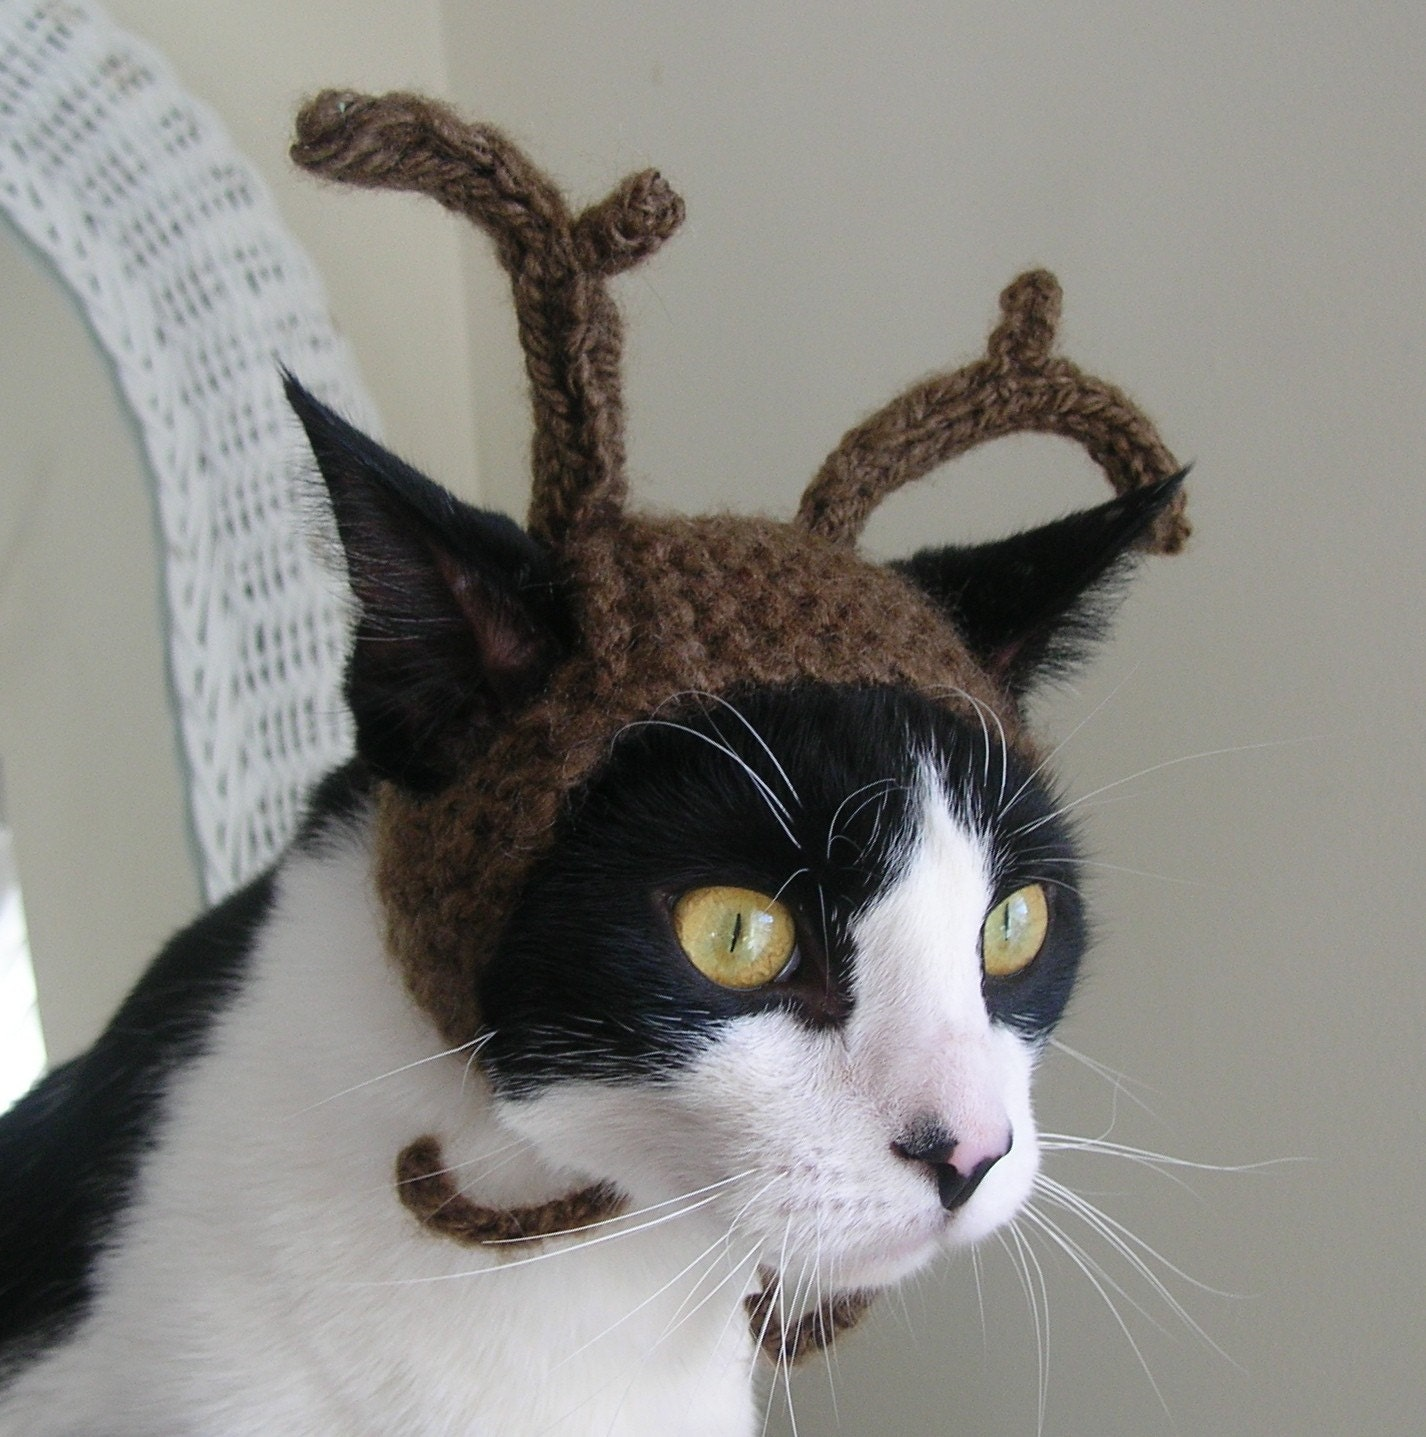 Knitting Pattern For Reindeer Hats For Dogs : The Reindeer Cat Hat by scooterKnits on Etsy